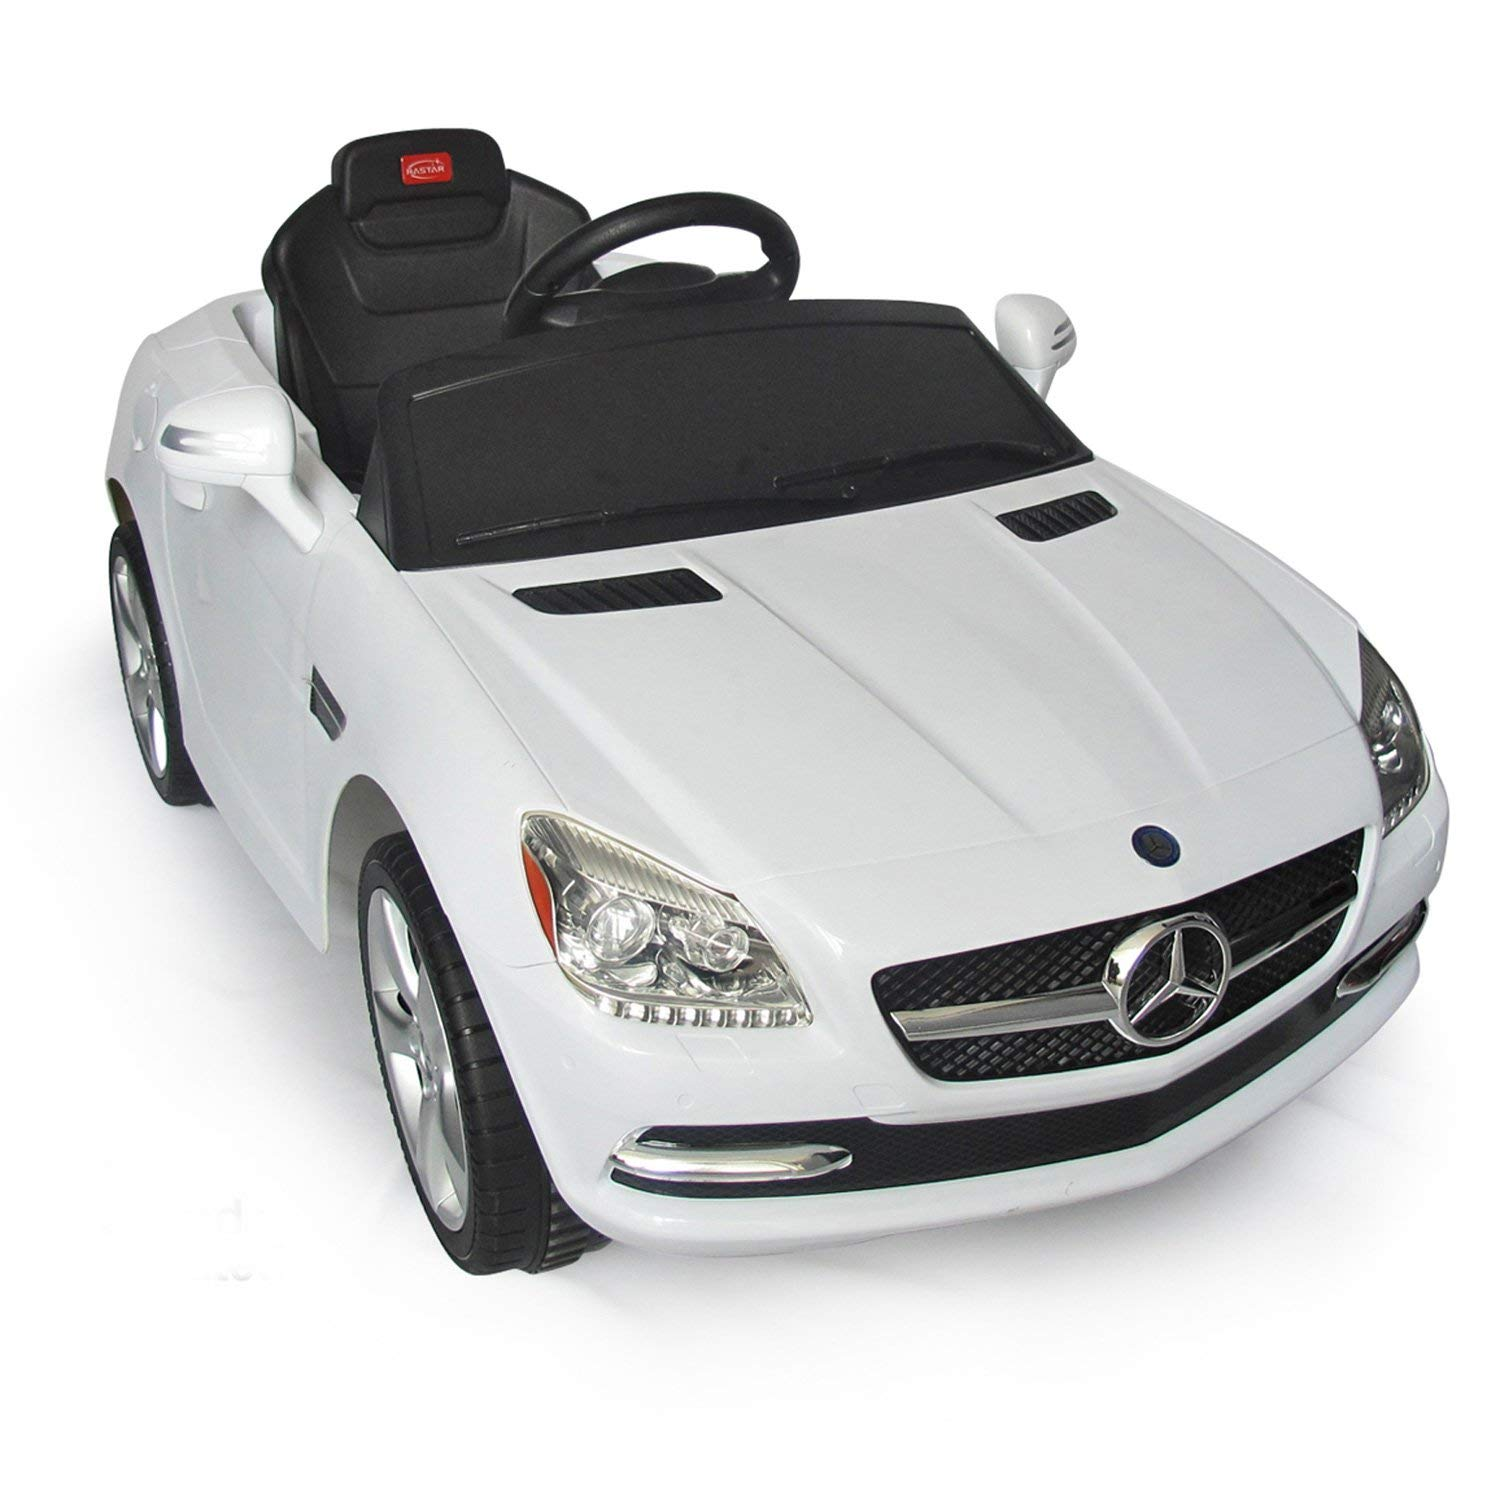 mercedes benz slk kids 6v electric battery powered ride on toy car w parent remote control white toys games